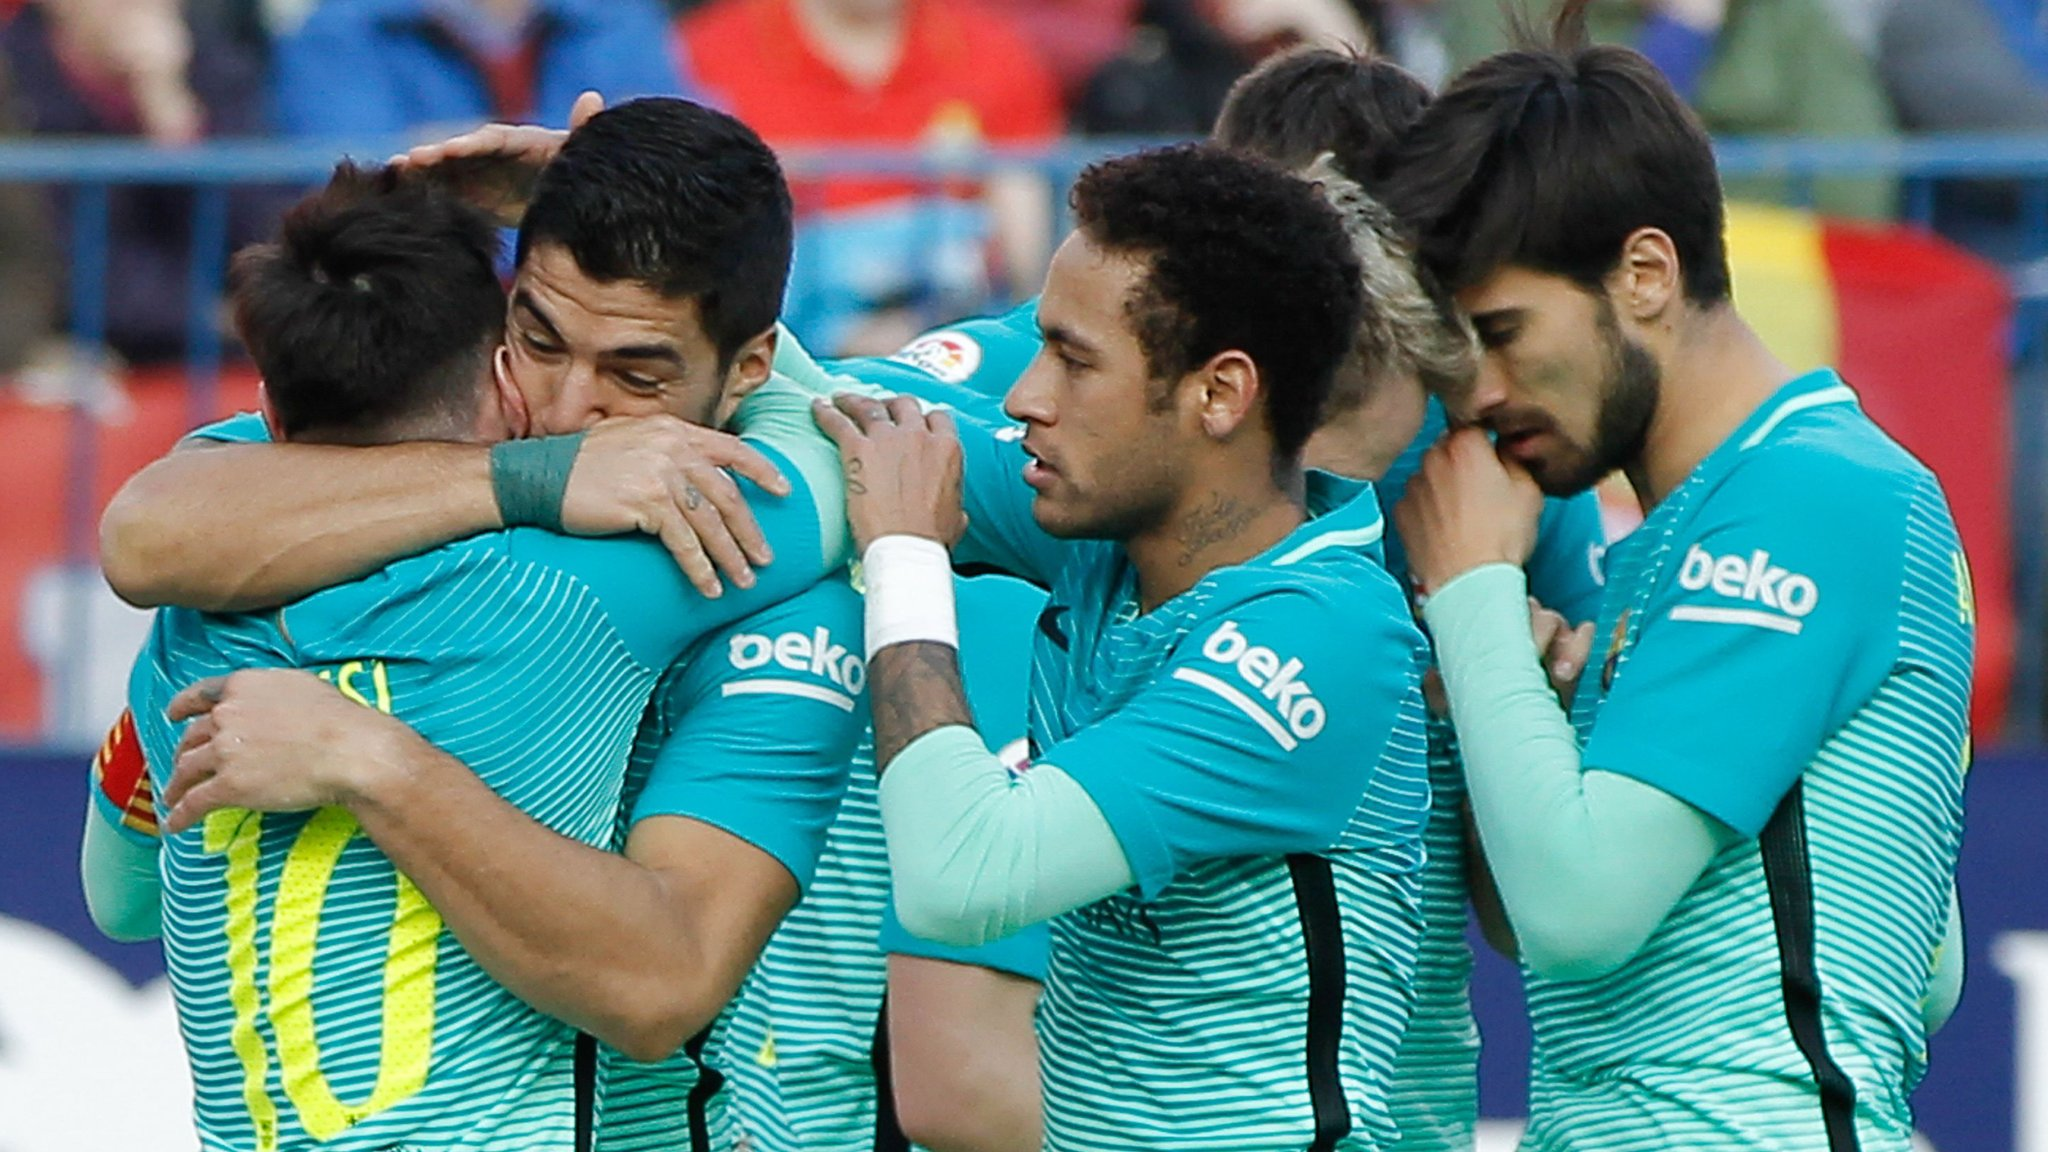 Late Messi goal seals win over Atletico Madrid